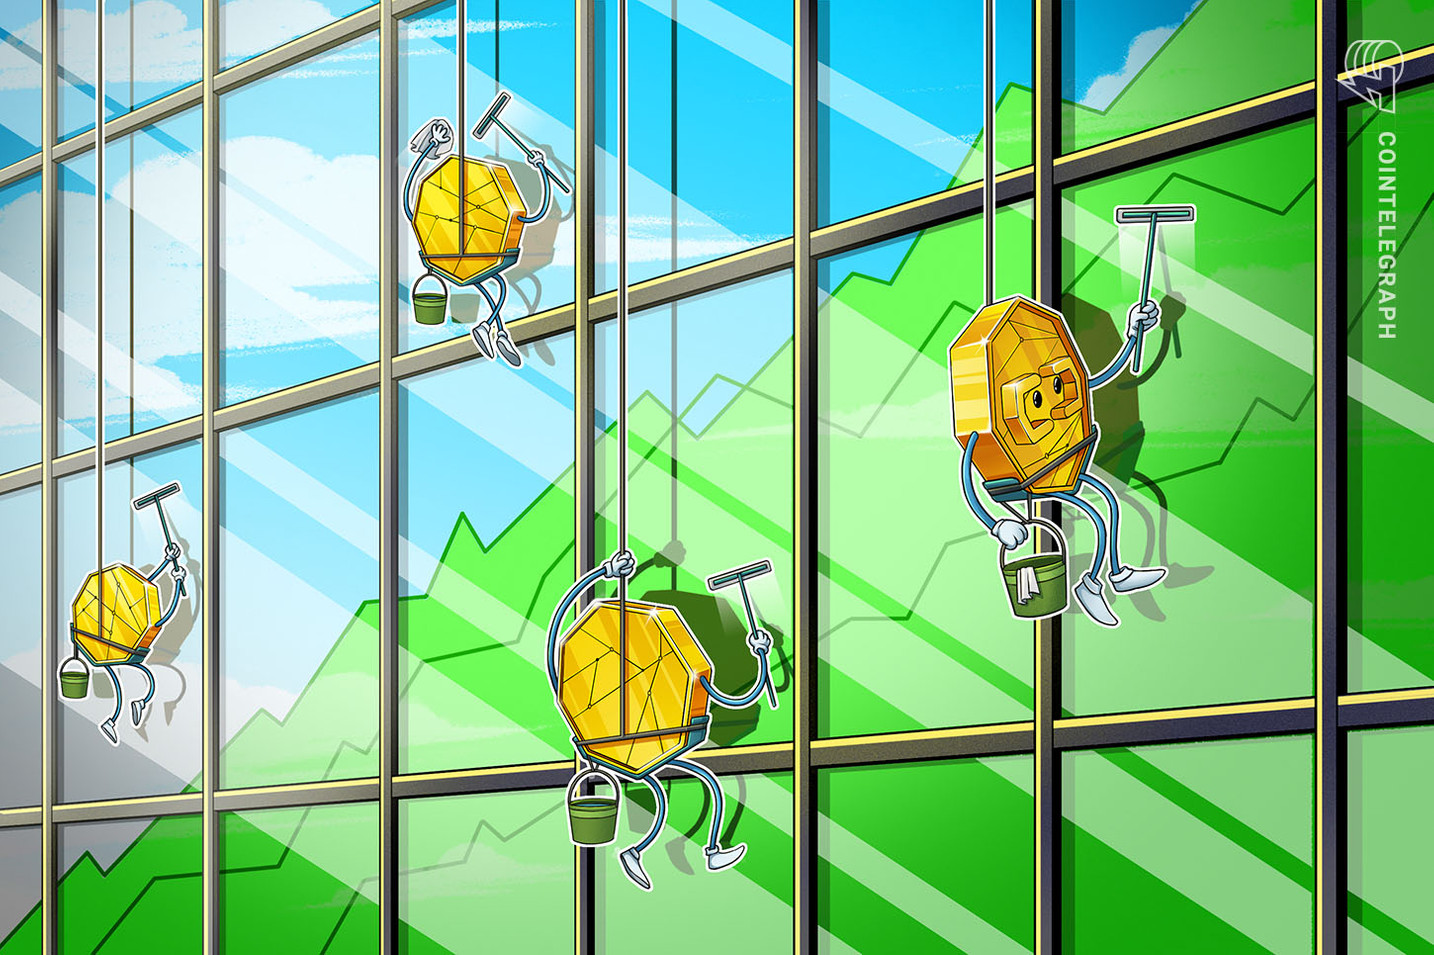 DeFi tokens rally while Bitcoin bulls attempt to flip $19.5K to support